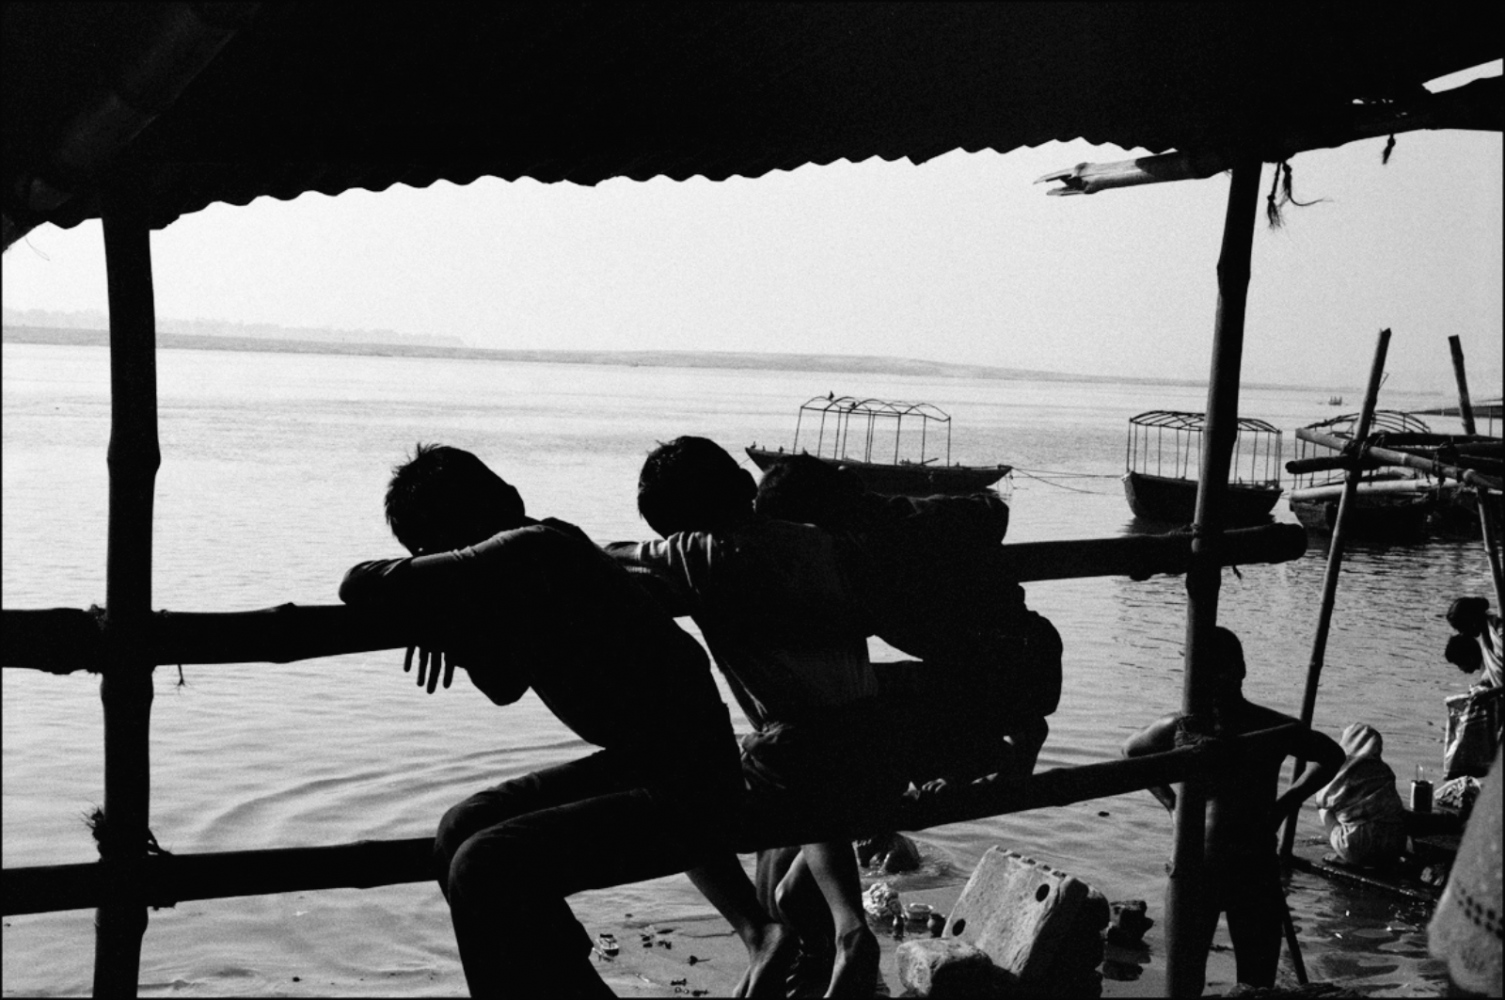 Boys Looking at Ganges, Varanasi, India, November 2003